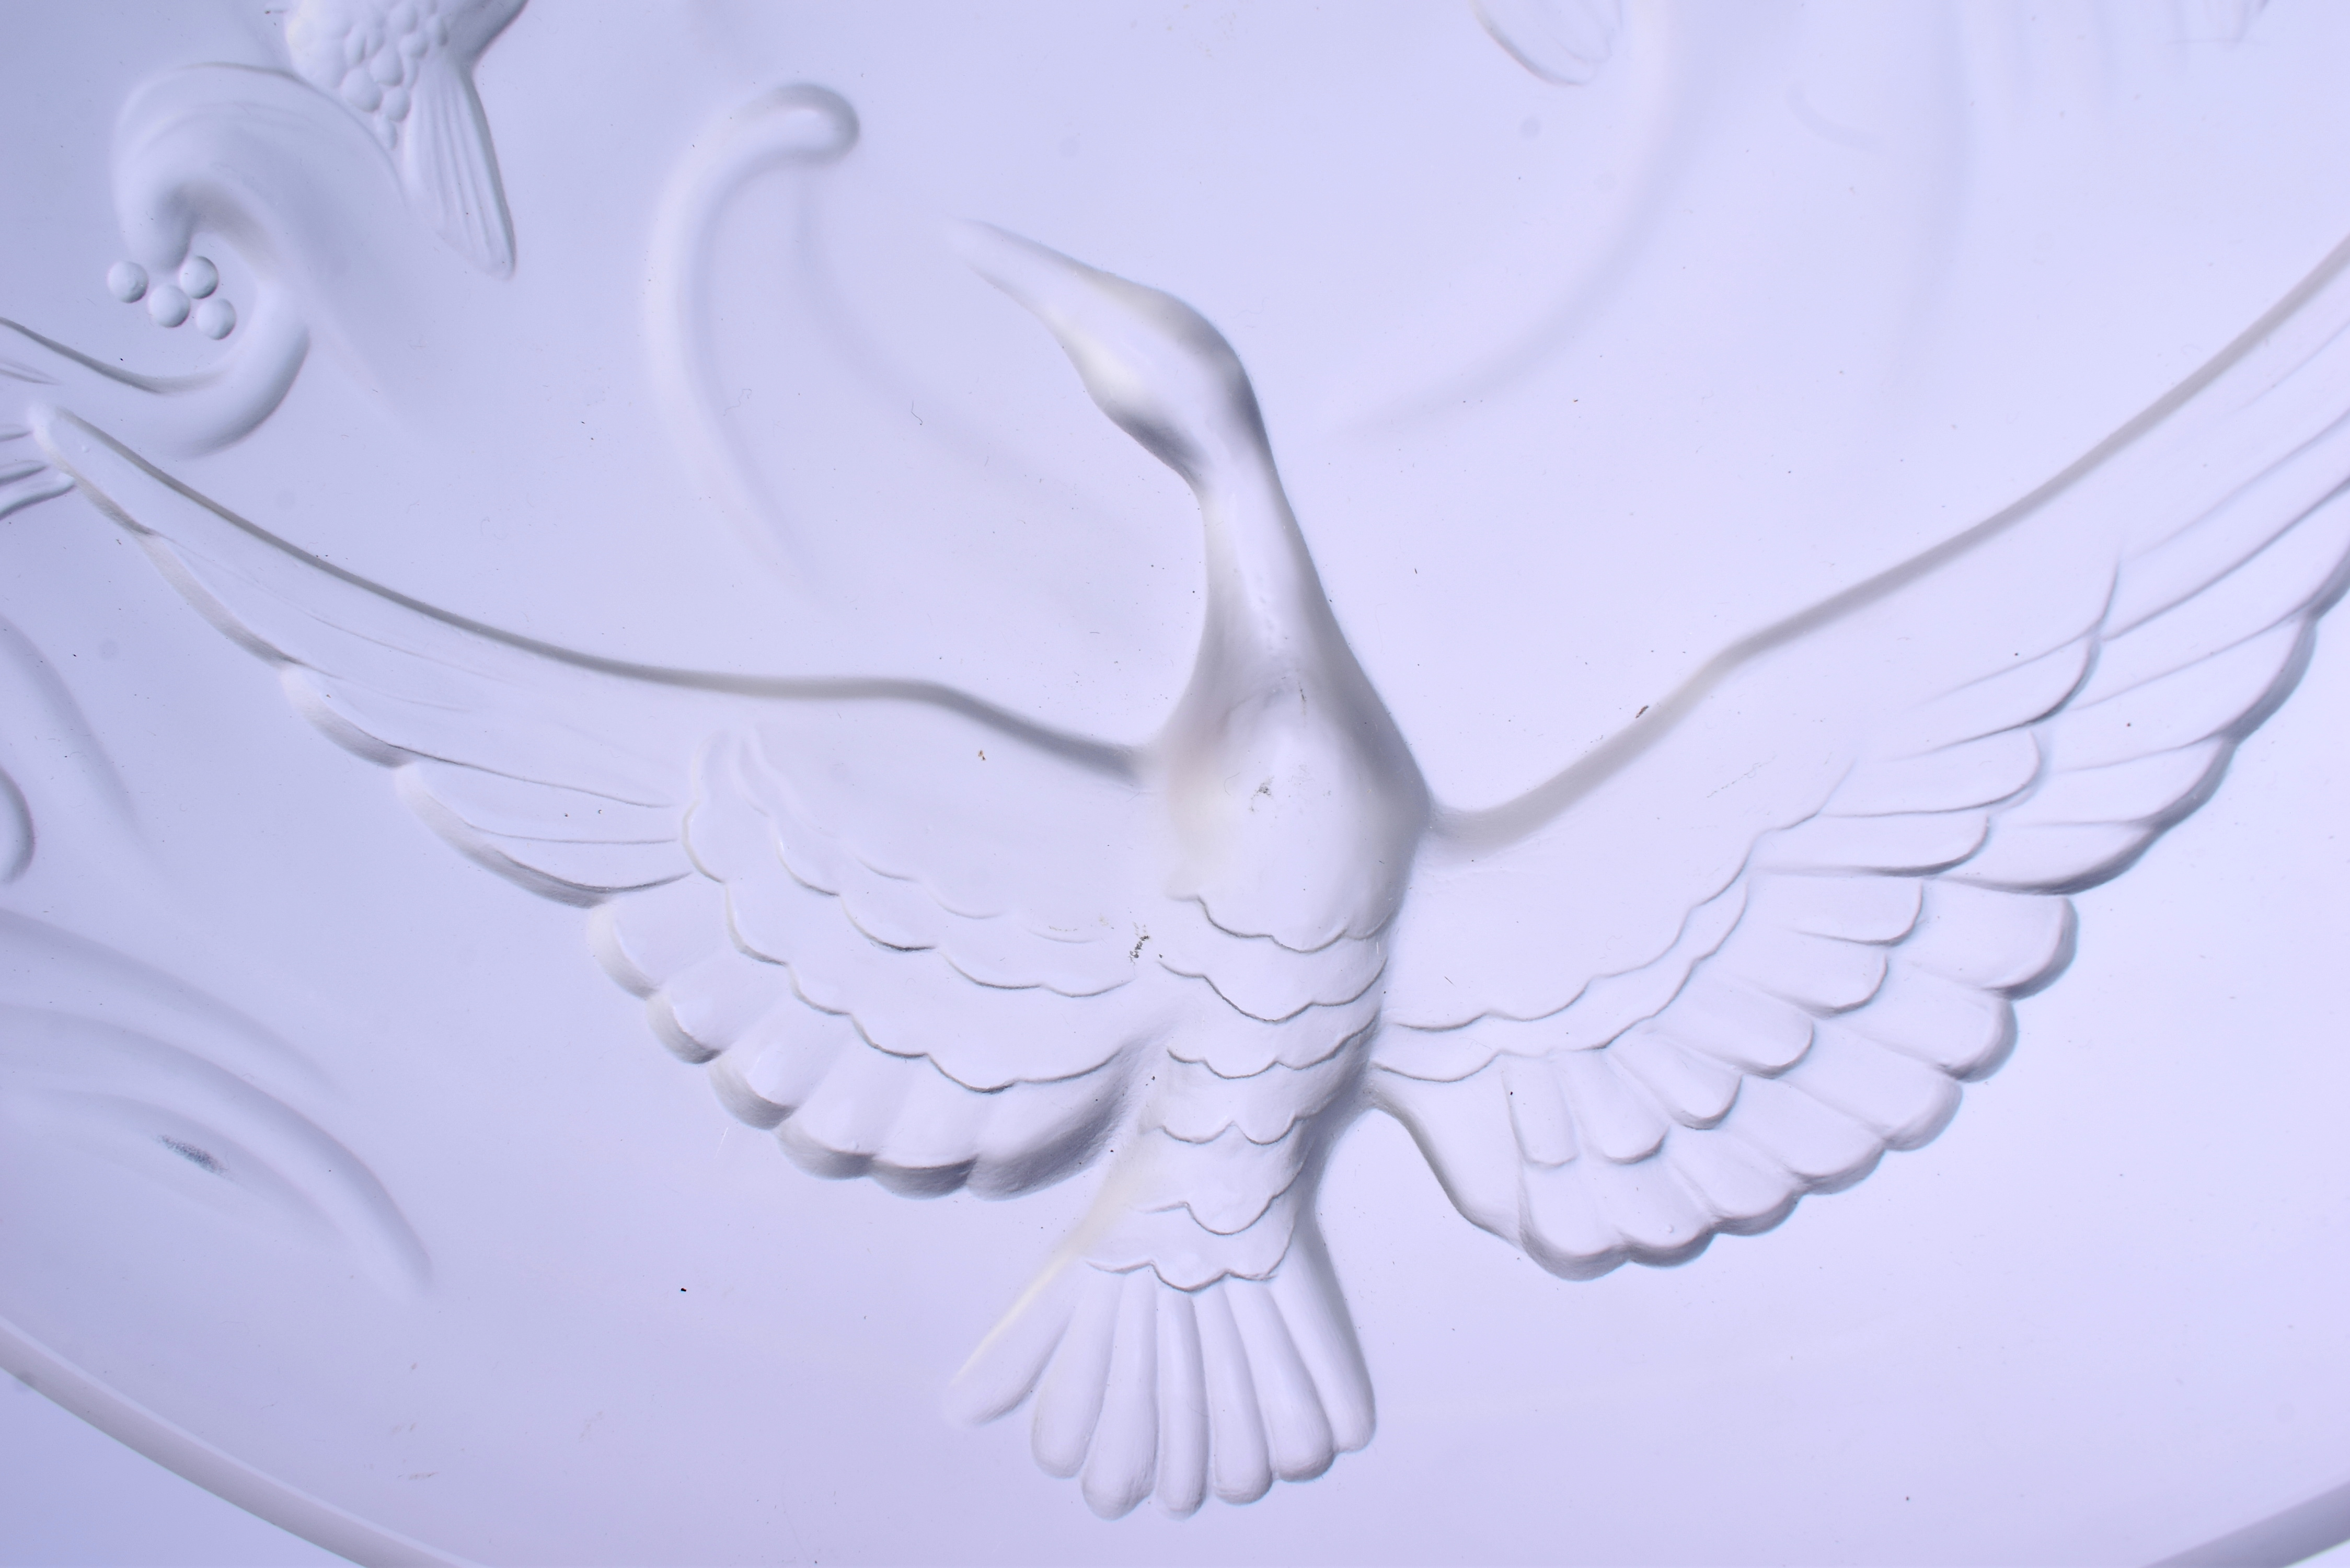 A LARGE FRENCH VERLYS MOLD LES CANARDS SAUVAGE GLASS DISH. 26 cm diameter. - Image 3 of 5